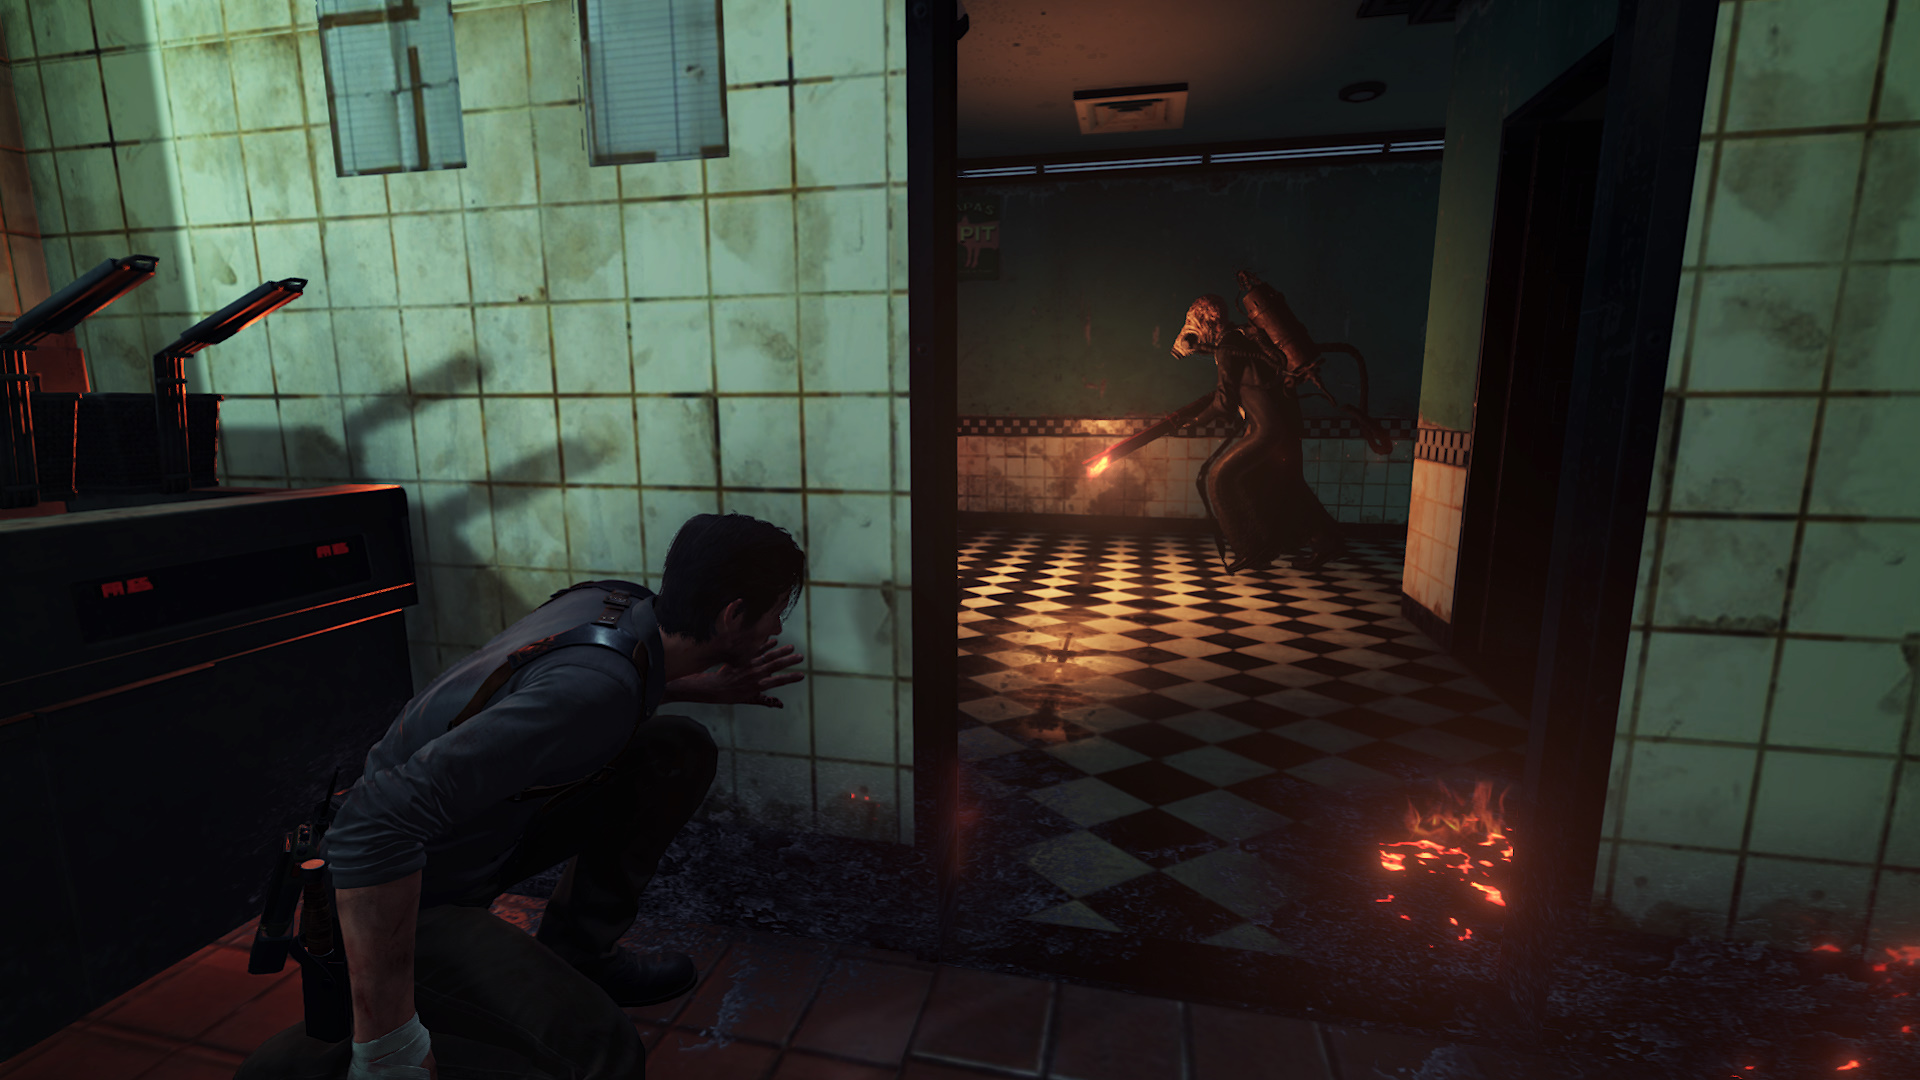 TEW2 2019-02-08 20-45-53-807.jpg - Evil Within 2, the